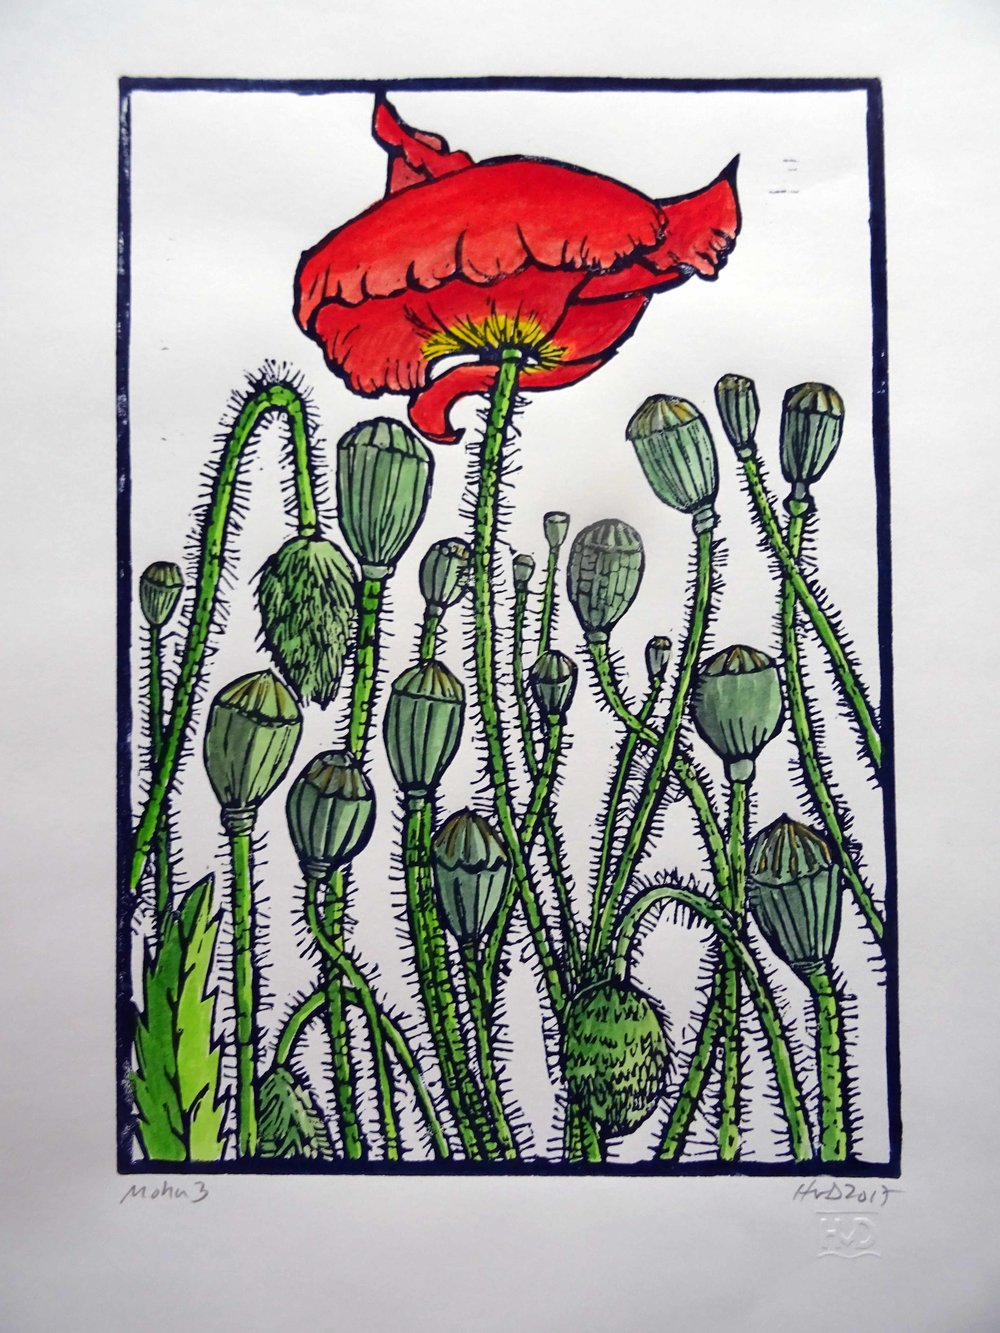 249 - Mohn 2, coloured lino 30x21 cm, 70 €